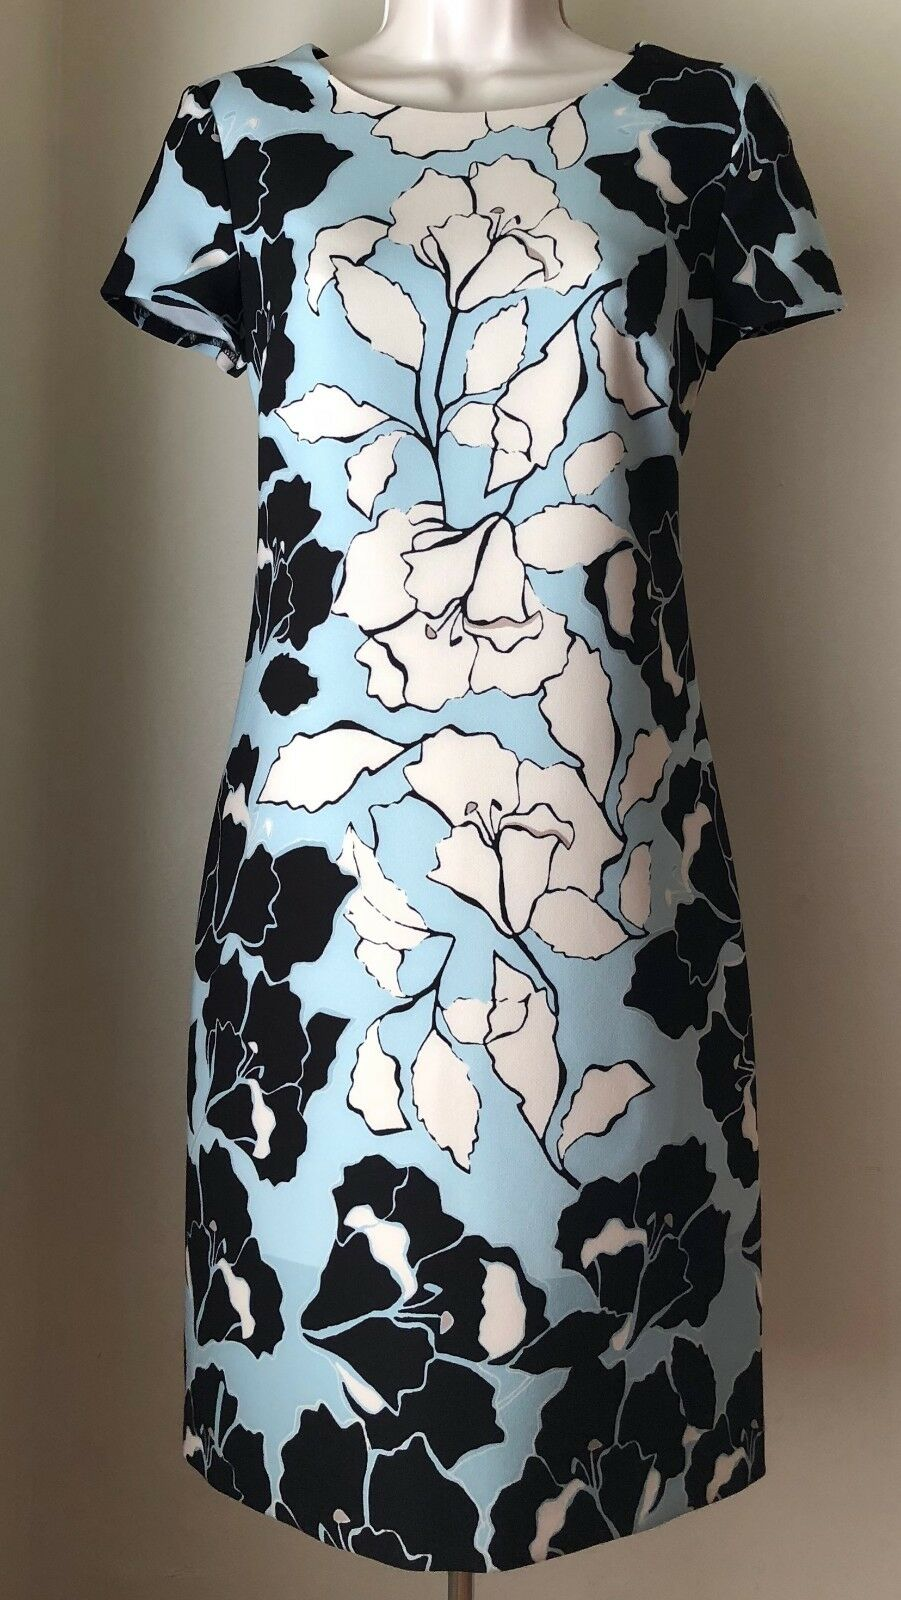 KARL LAGERFELD PARIS Floral Printed Shift Dress L8AB6935 NWT Sz 2, 8, 14